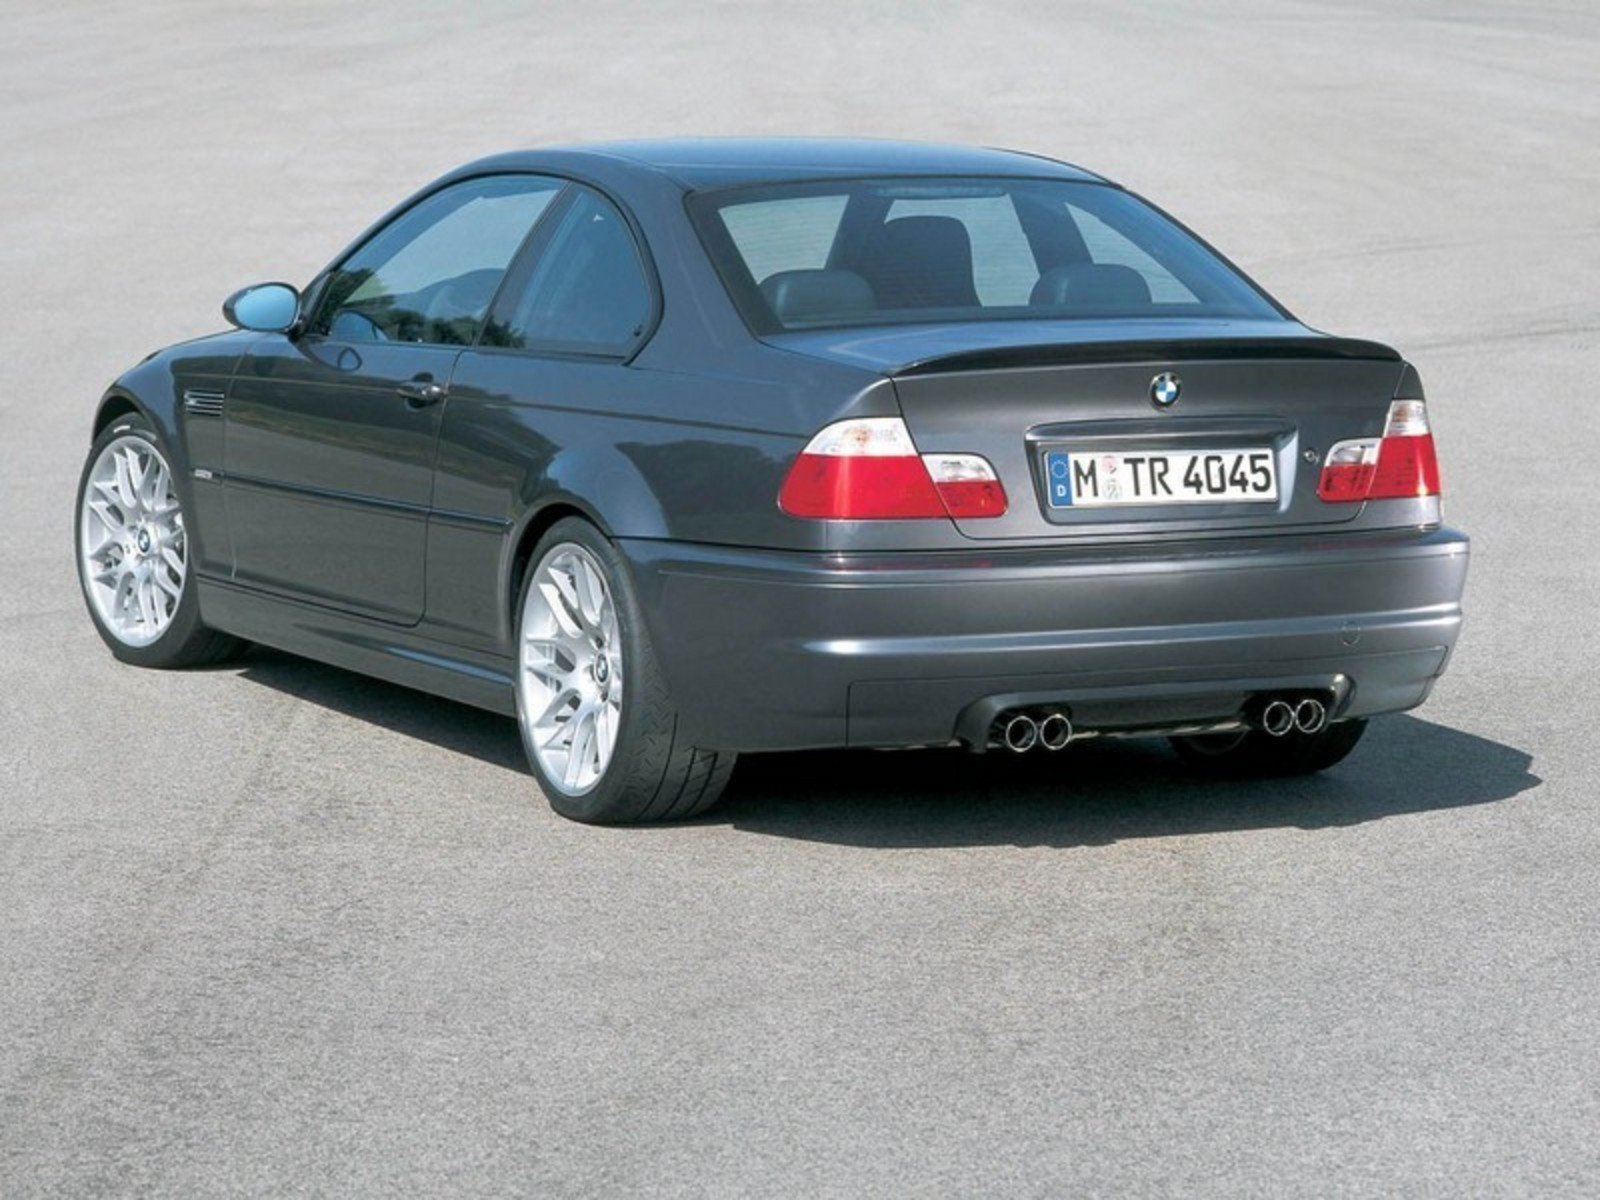 2005 bmw m3 e46 csl picture 30974 car review top speed. Black Bedroom Furniture Sets. Home Design Ideas